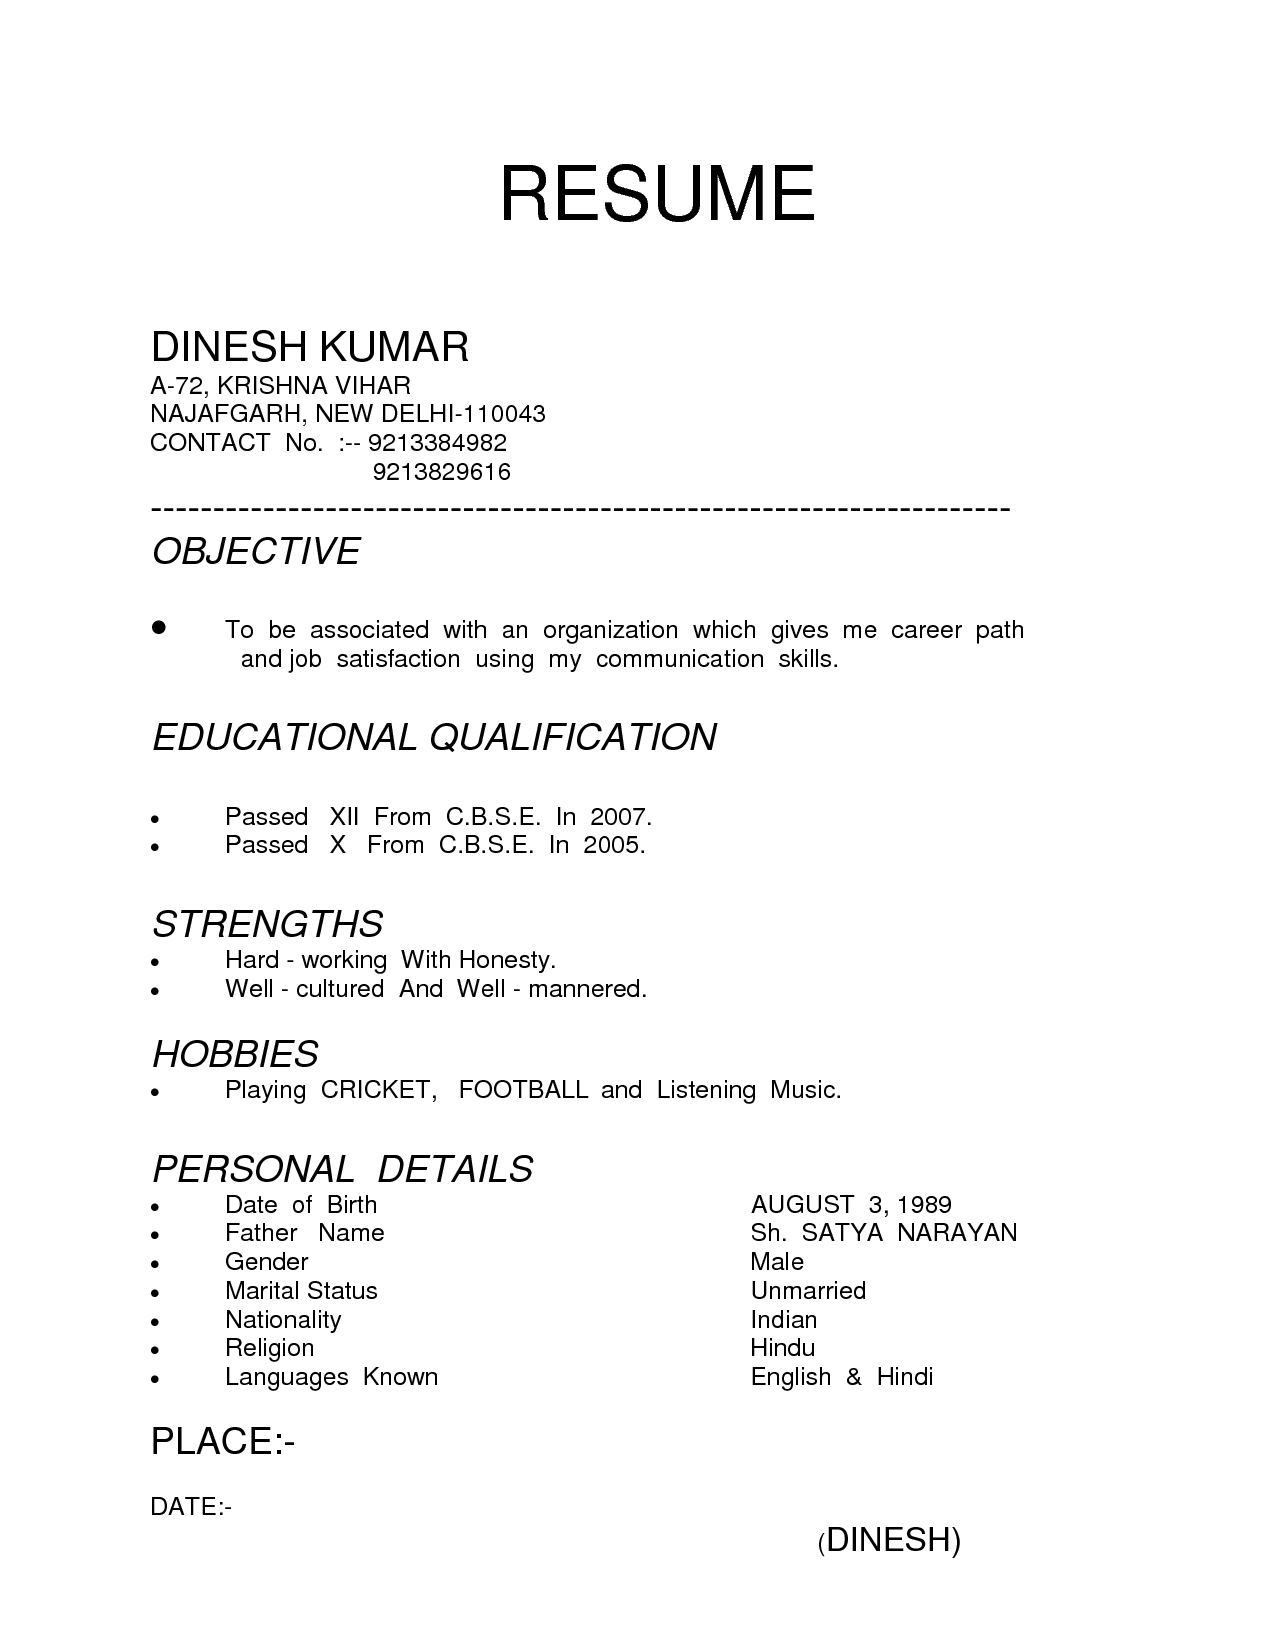 Kinds Of Resume Examples , #examples #kinds #resume #resumeexamples ...